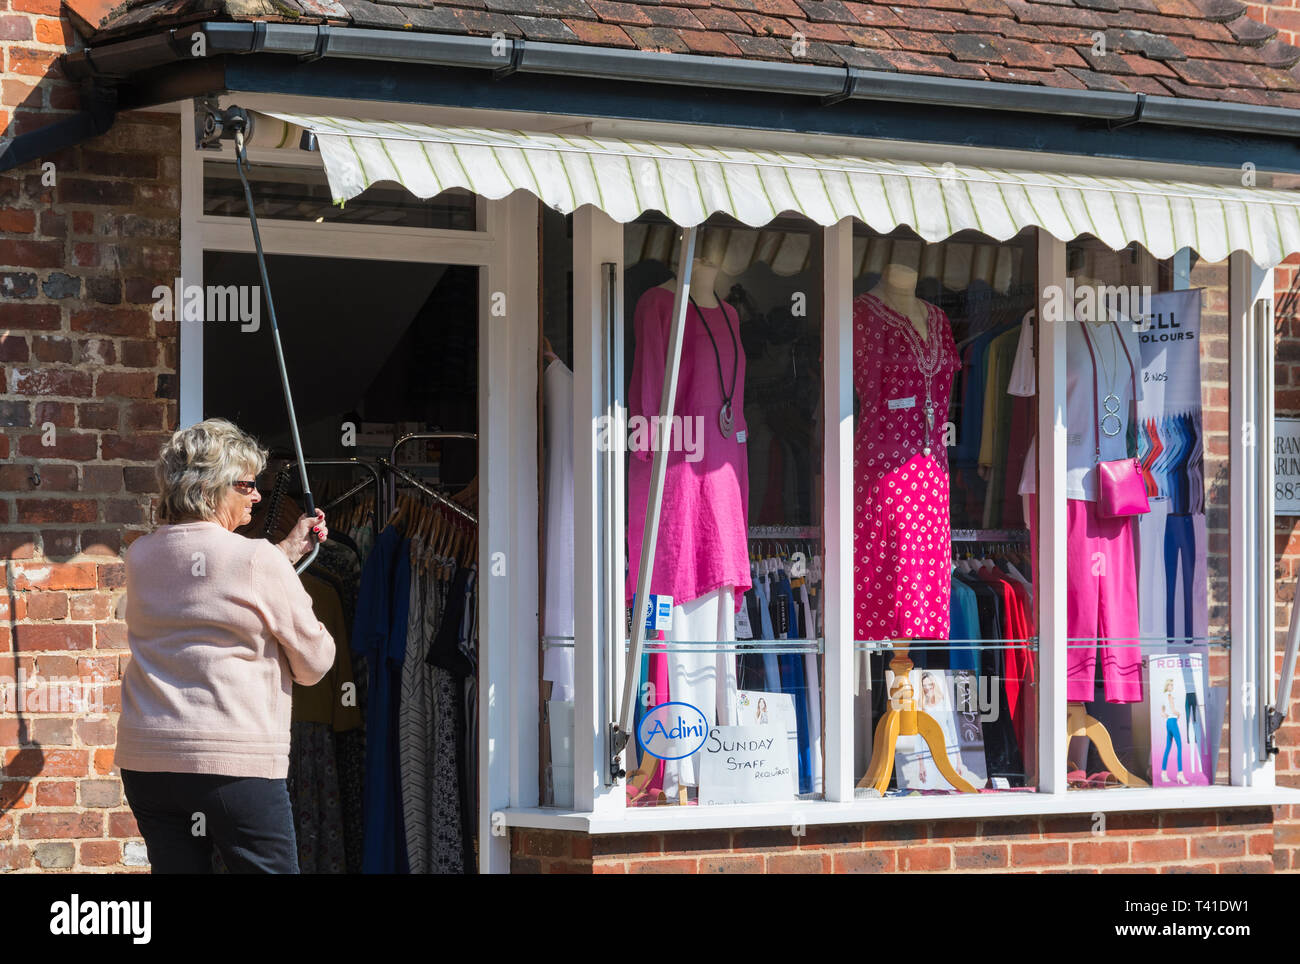 Woman extending awning outside a small local independent clothing store in the UK. - Stock Image